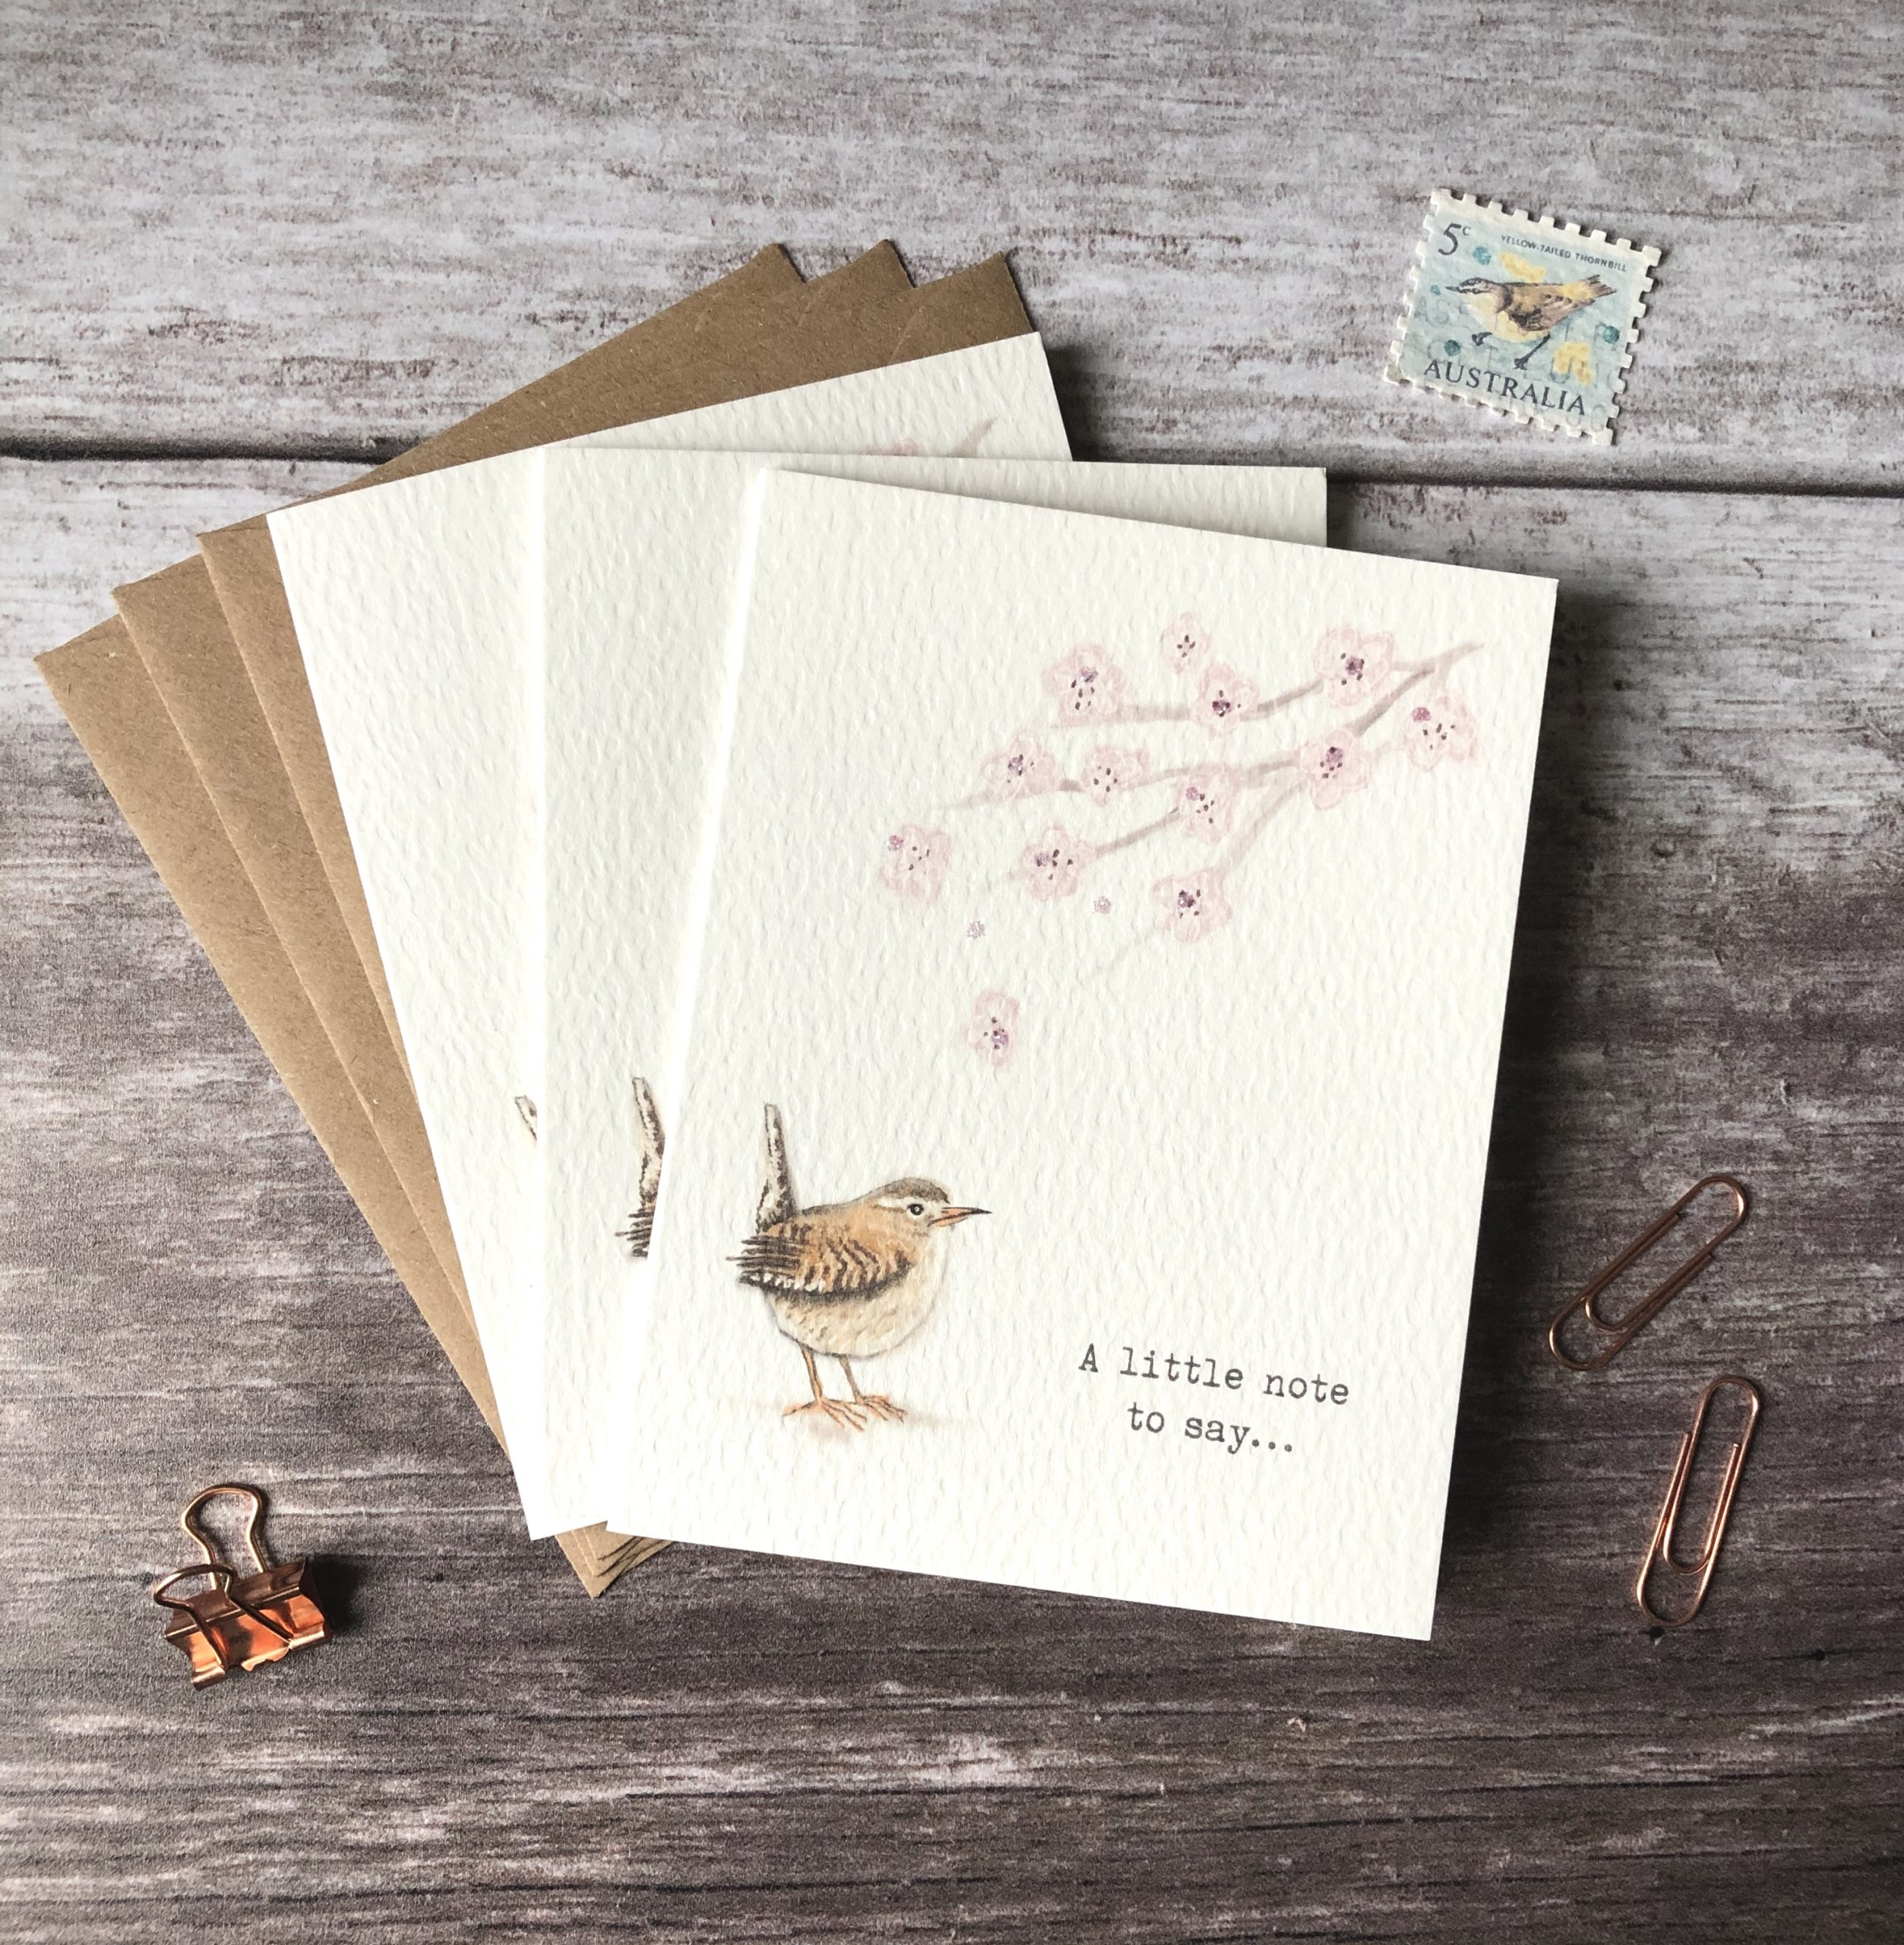 IMG_1893 - arbee stationery & design